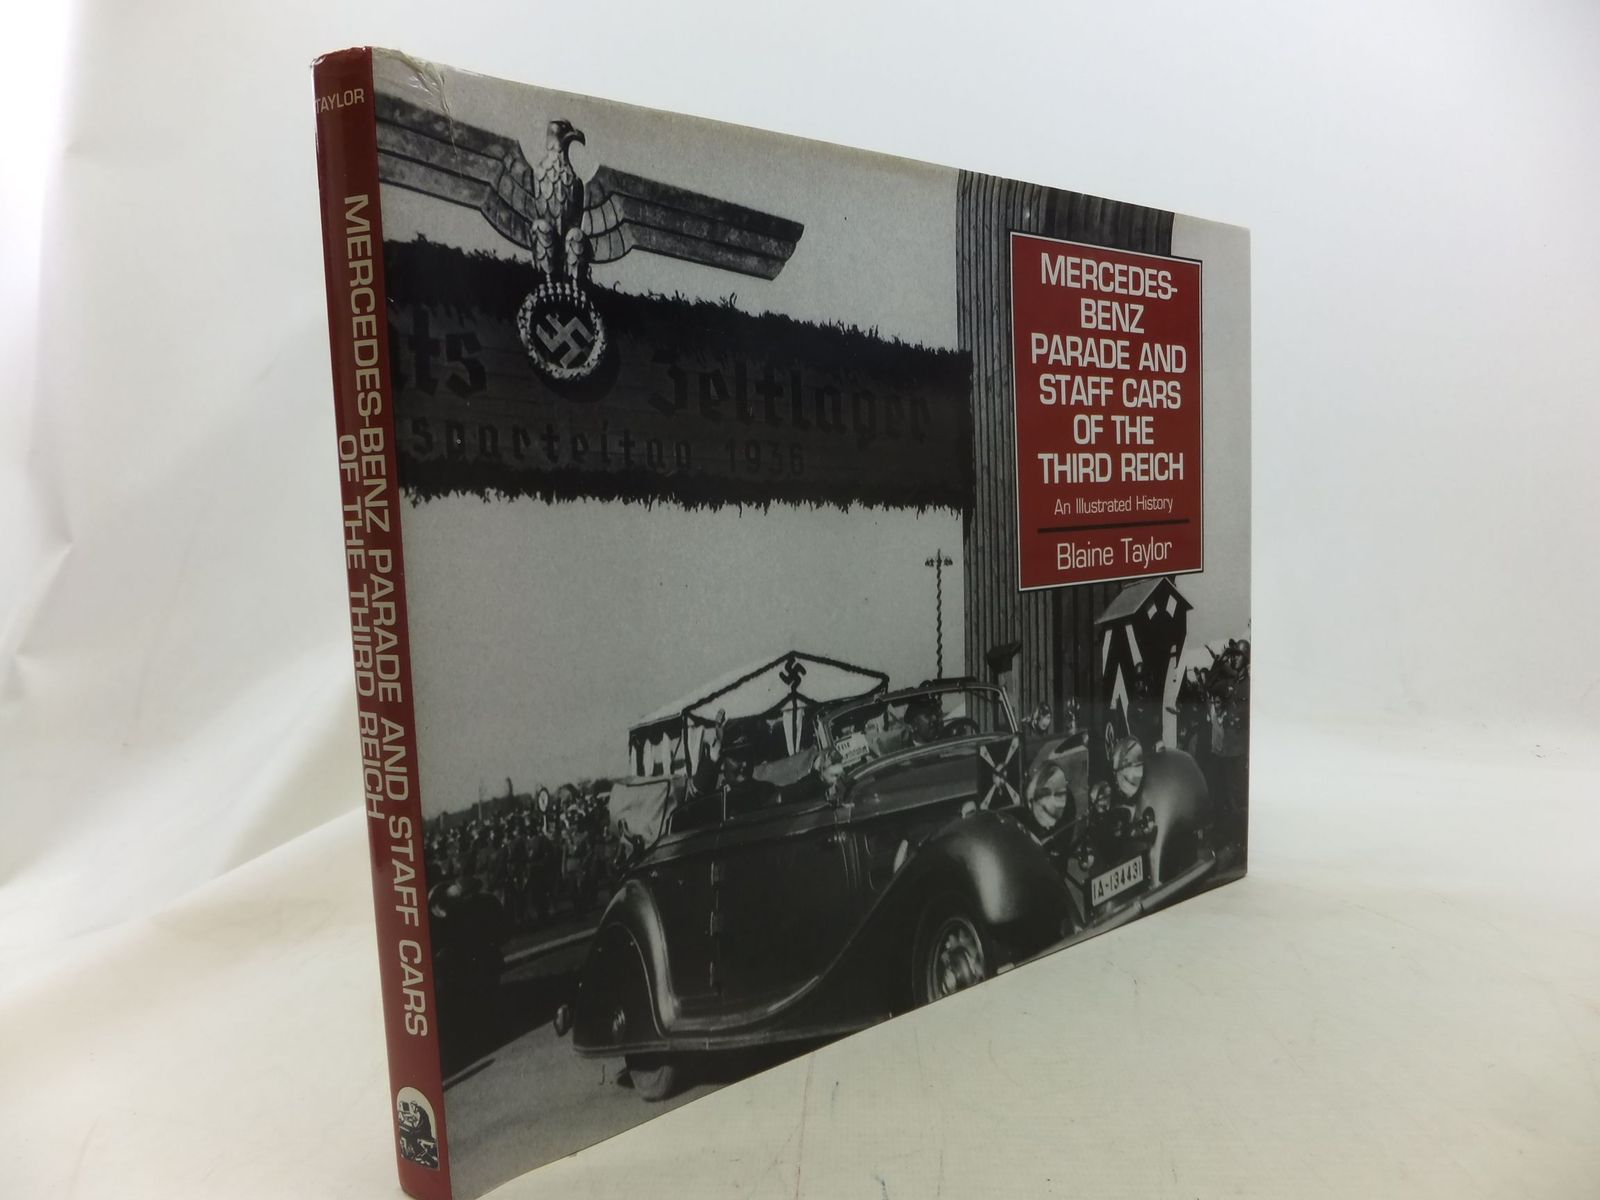 Photo of MERCEDES-BENZ PARADE AND STAFF CARS OF THE THIRD REICH 1933-45 written by Taylor, Blaine published by Combined Publishing (STOCK CODE: 1711405)  for sale by Stella & Rose's Books